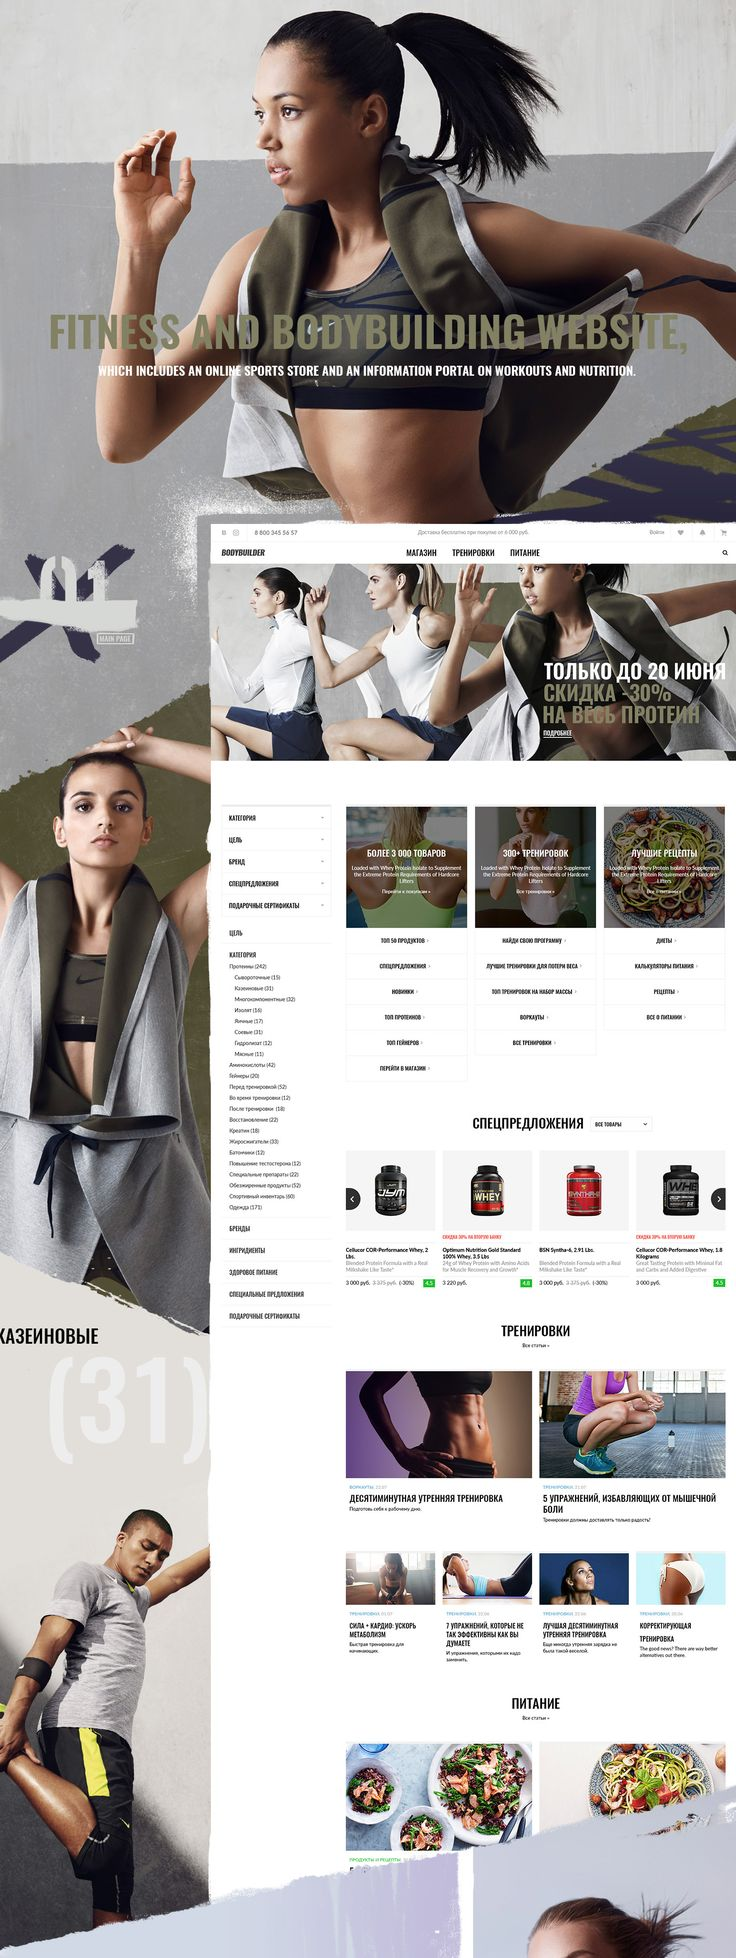 Fitness and bodybuilding website – which includes an online sports store and an information portal on workouts and nutrition.